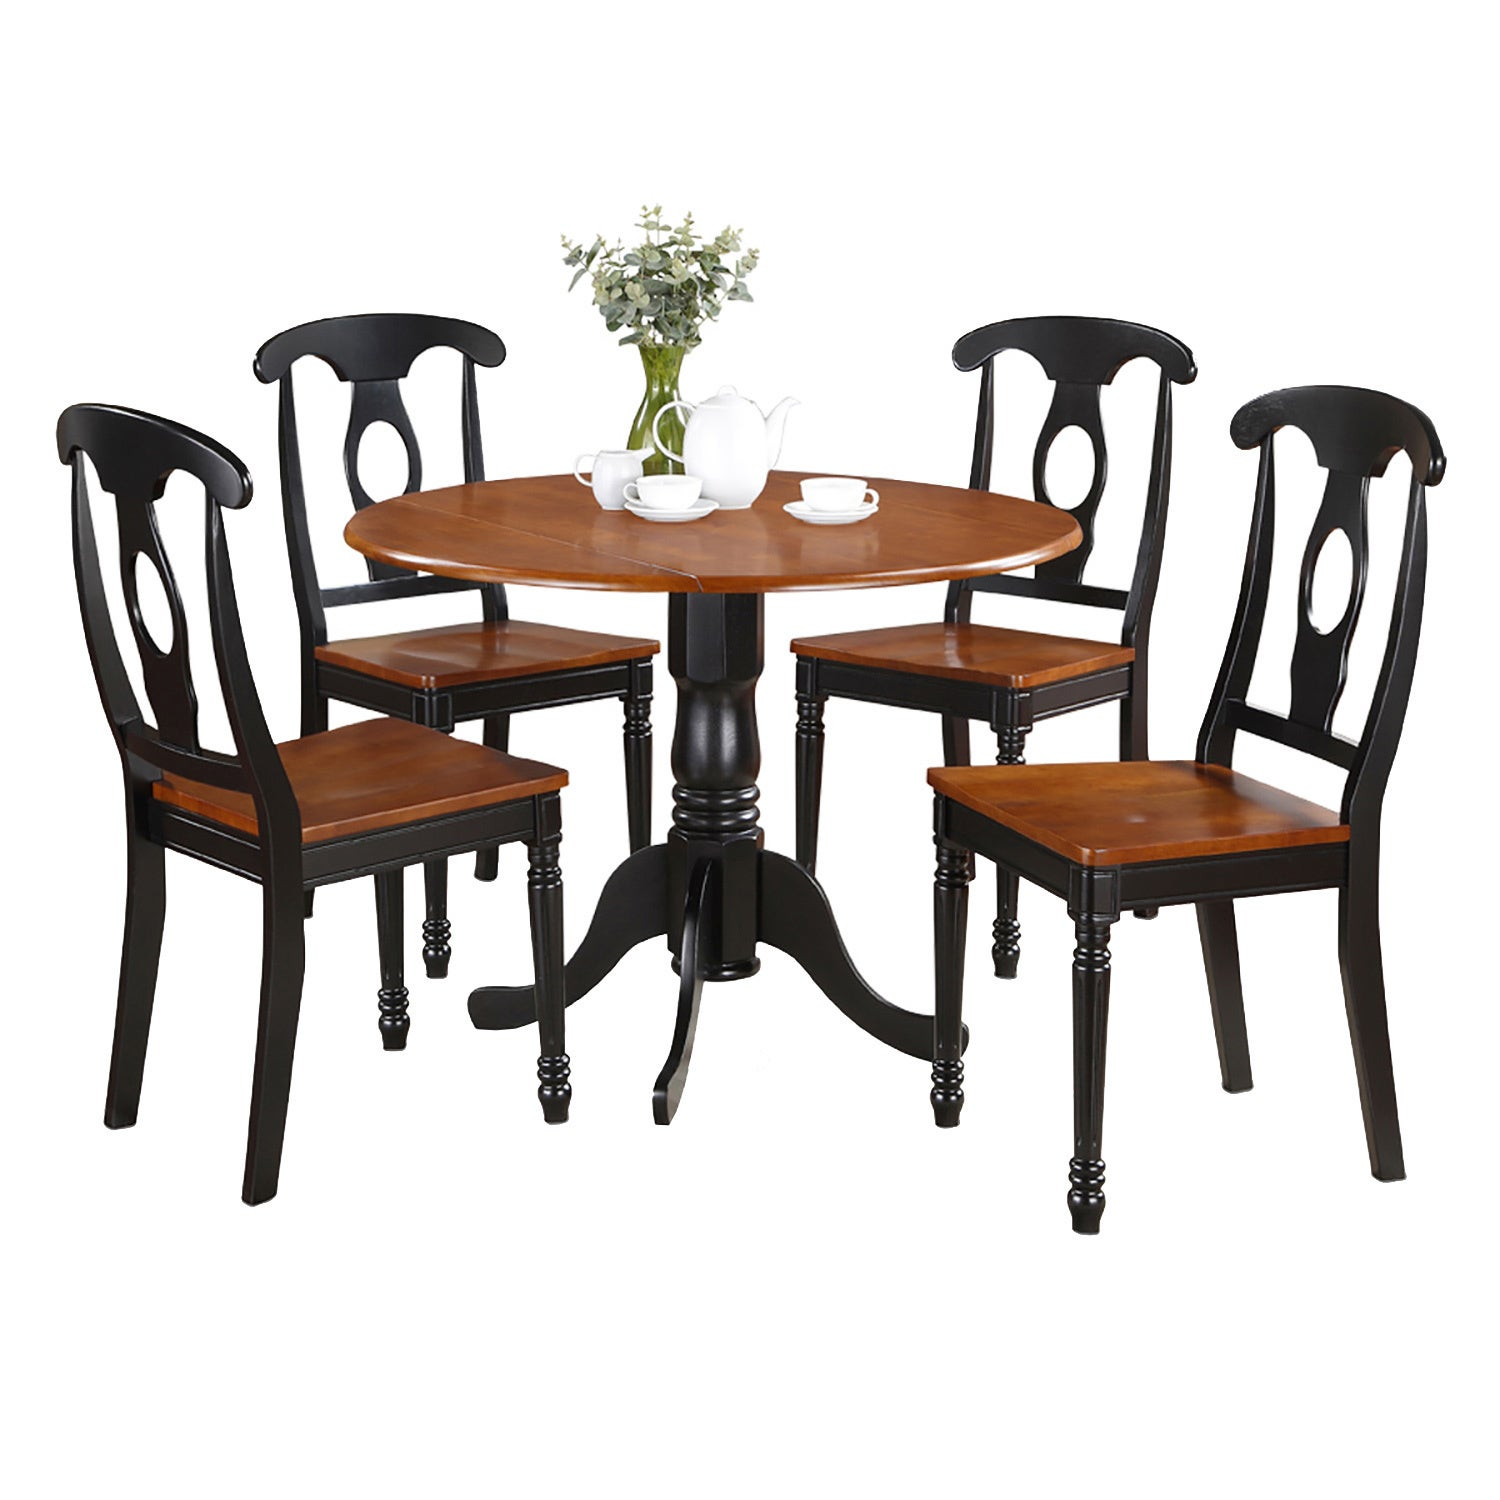 Black and Cherry Table with Four Dinette Chair Dining Set...